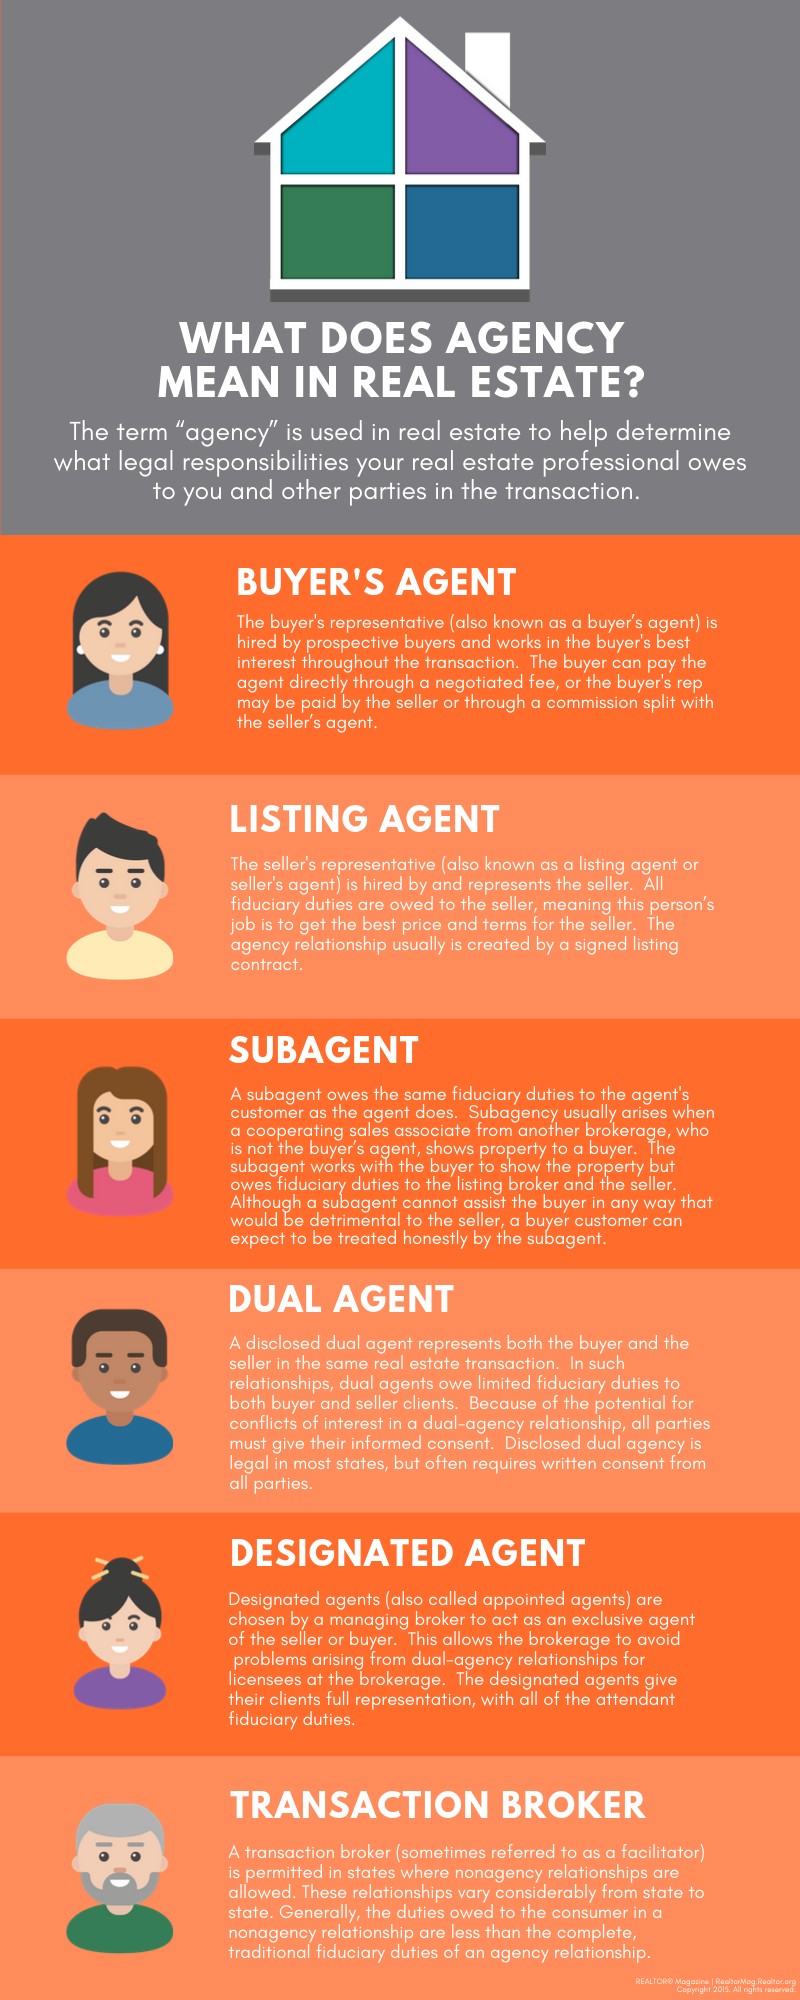 Real Estate Agency & Agency Relationships Infographic